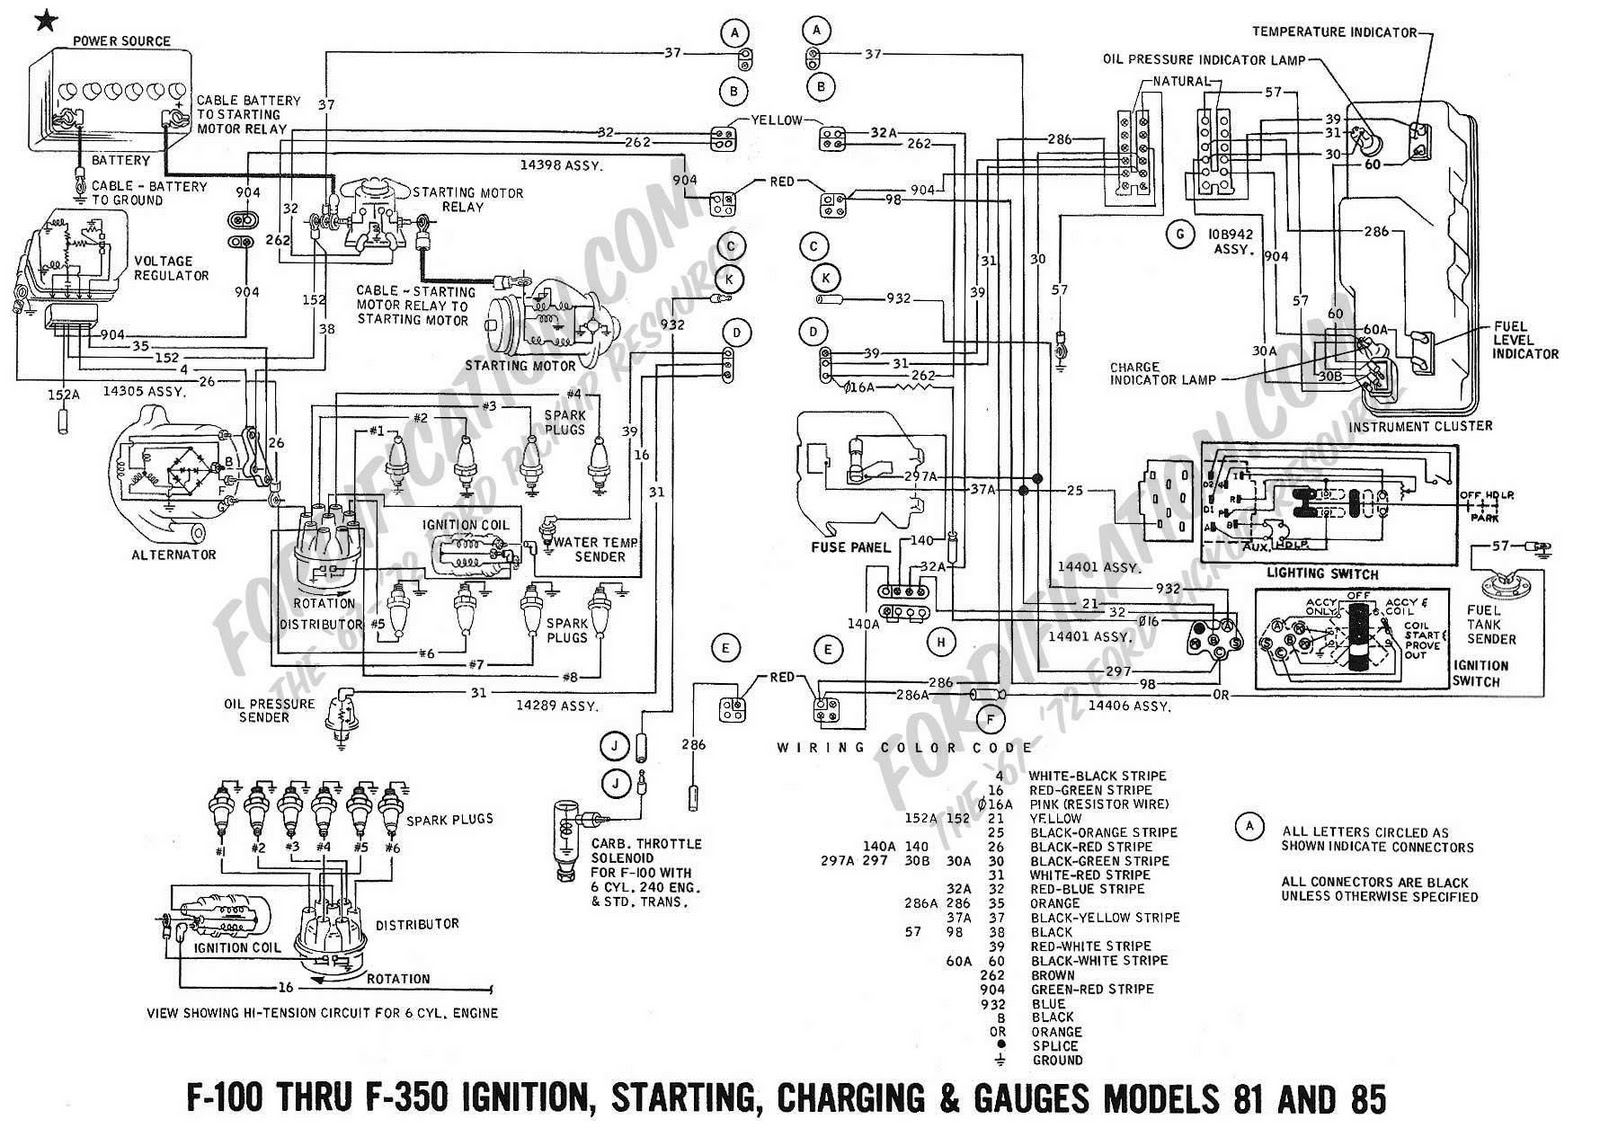 76 ford alternator wiring diagrams technical diagrams 1968 ford wiring diagram 1968 f250 wiring diagrams #2